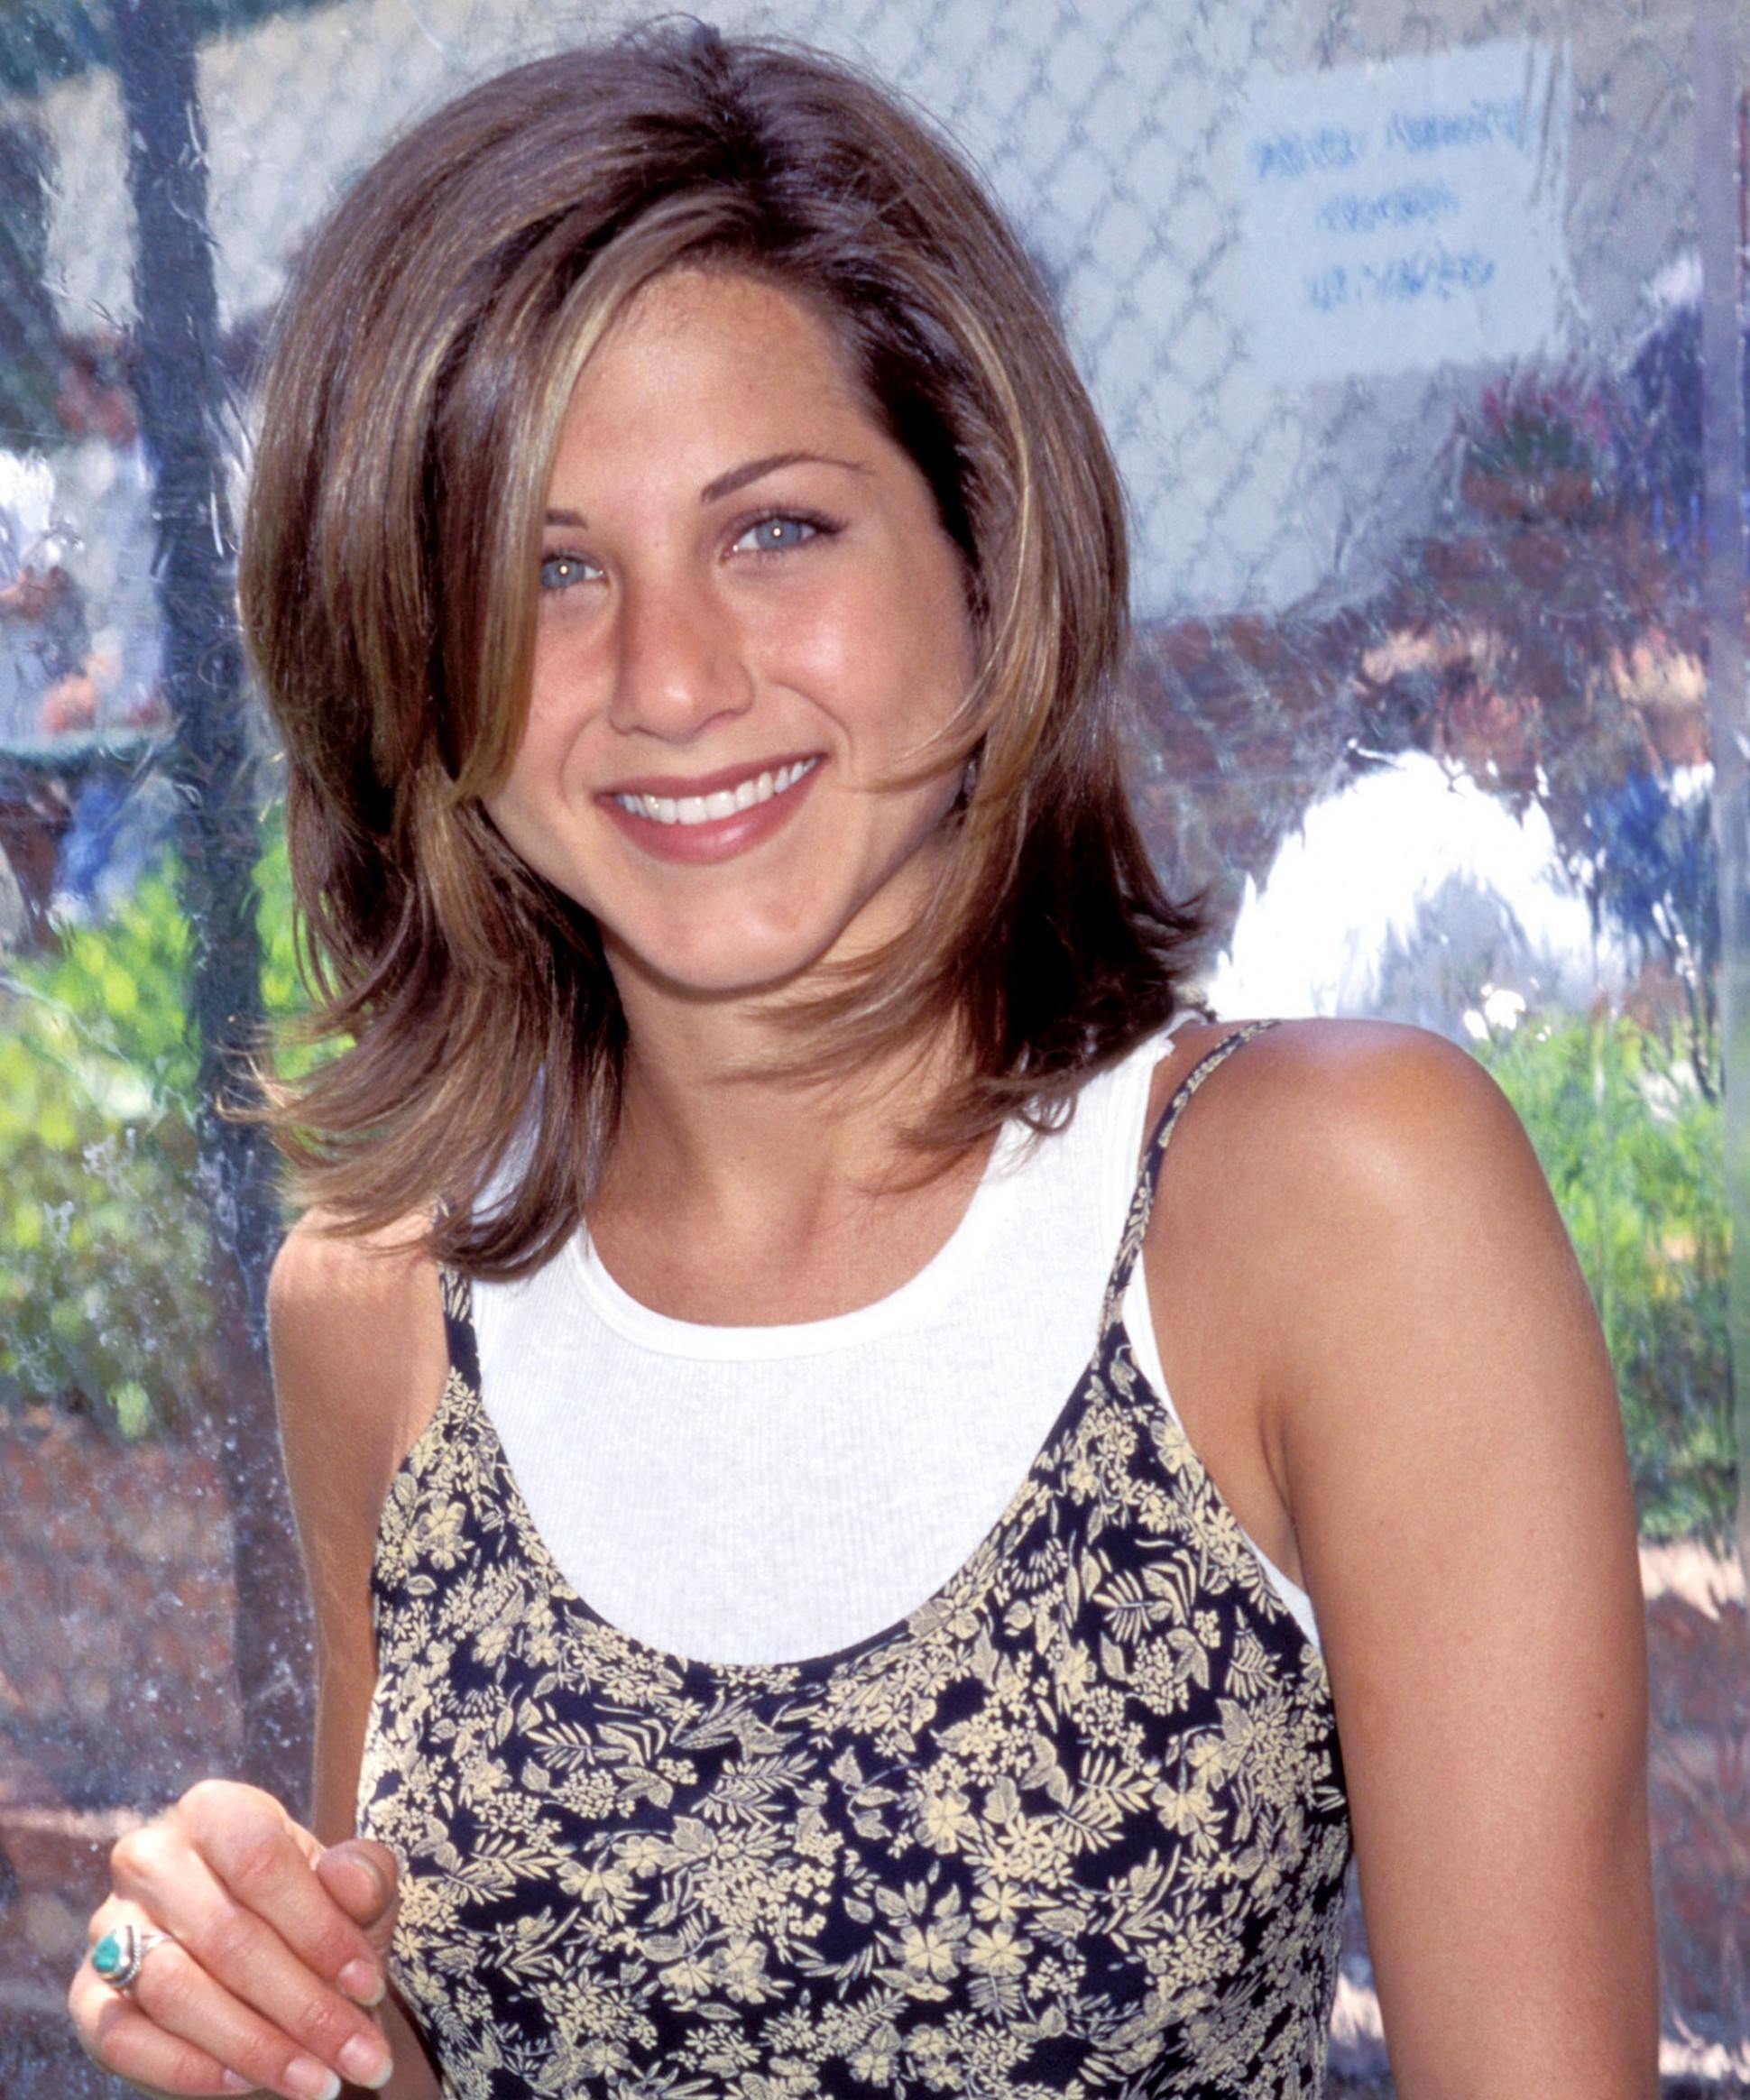 Jennifer Aniston Iconic Hair Cuts From Friends To 11